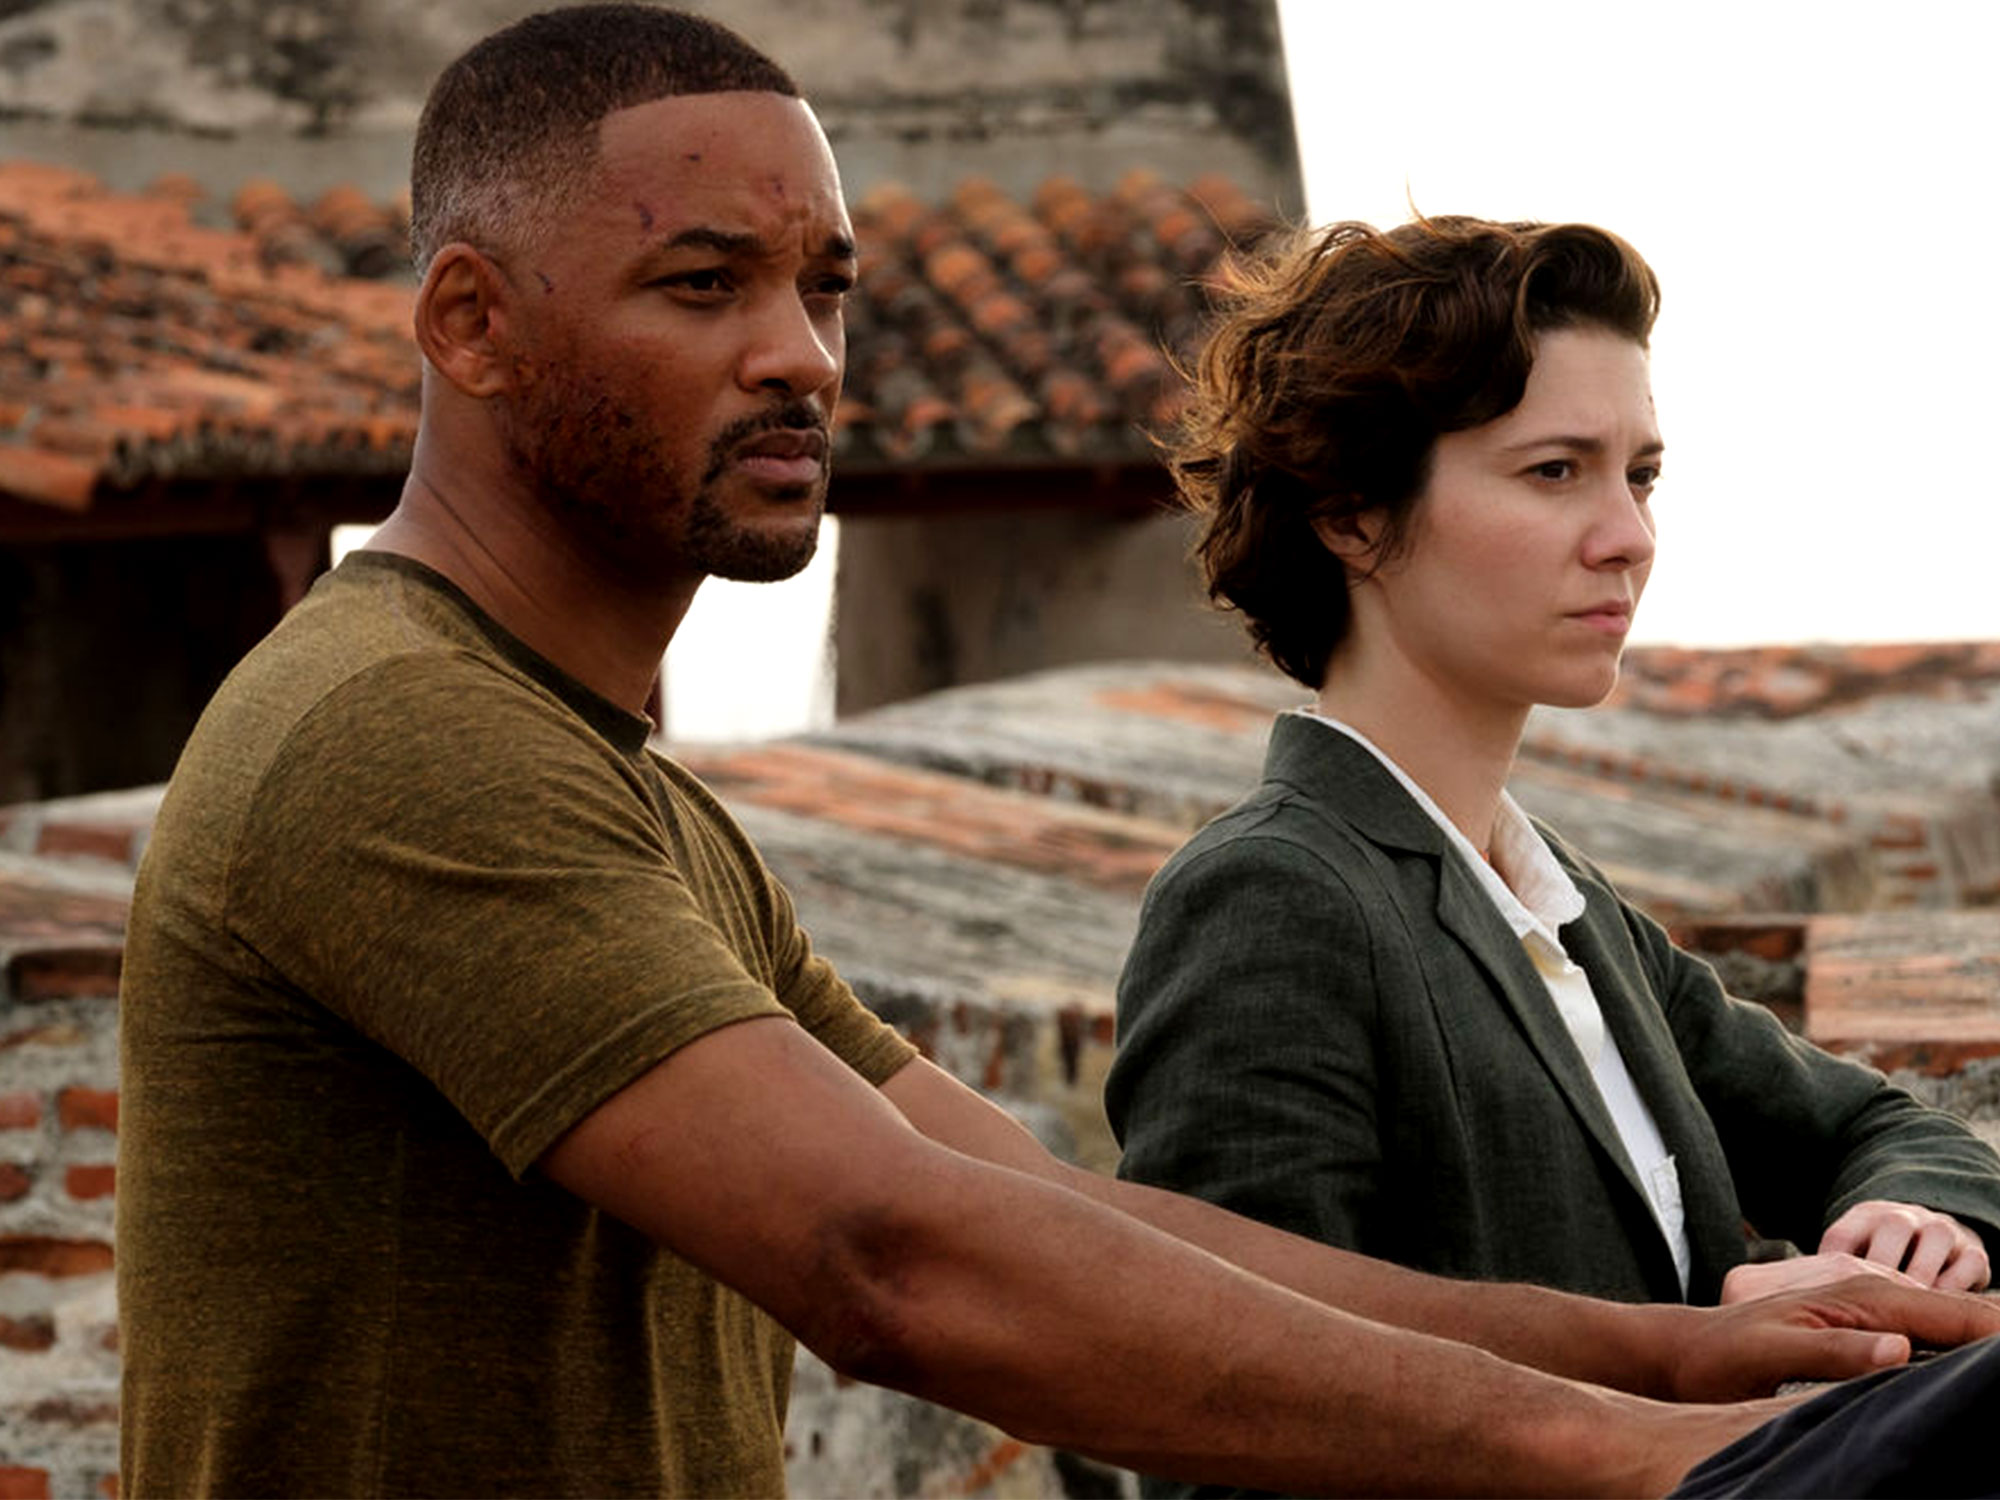 Will Smith and Mary Elizabeth Winstead in Gemini Man (2019)